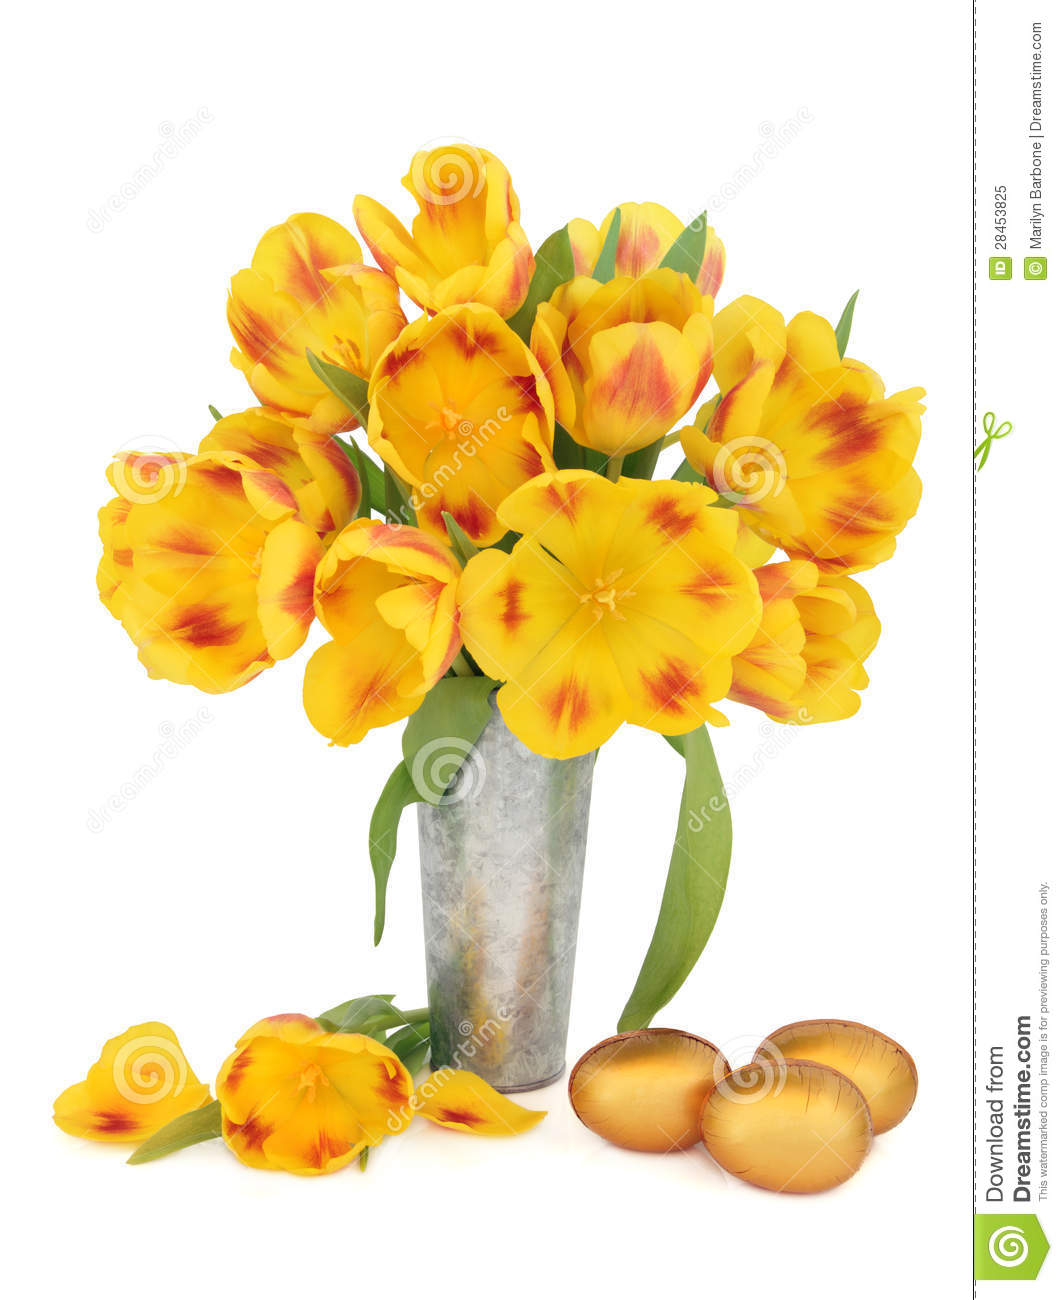 Easter Flowers Stock Image Image Of Tulip Colorful 28453825